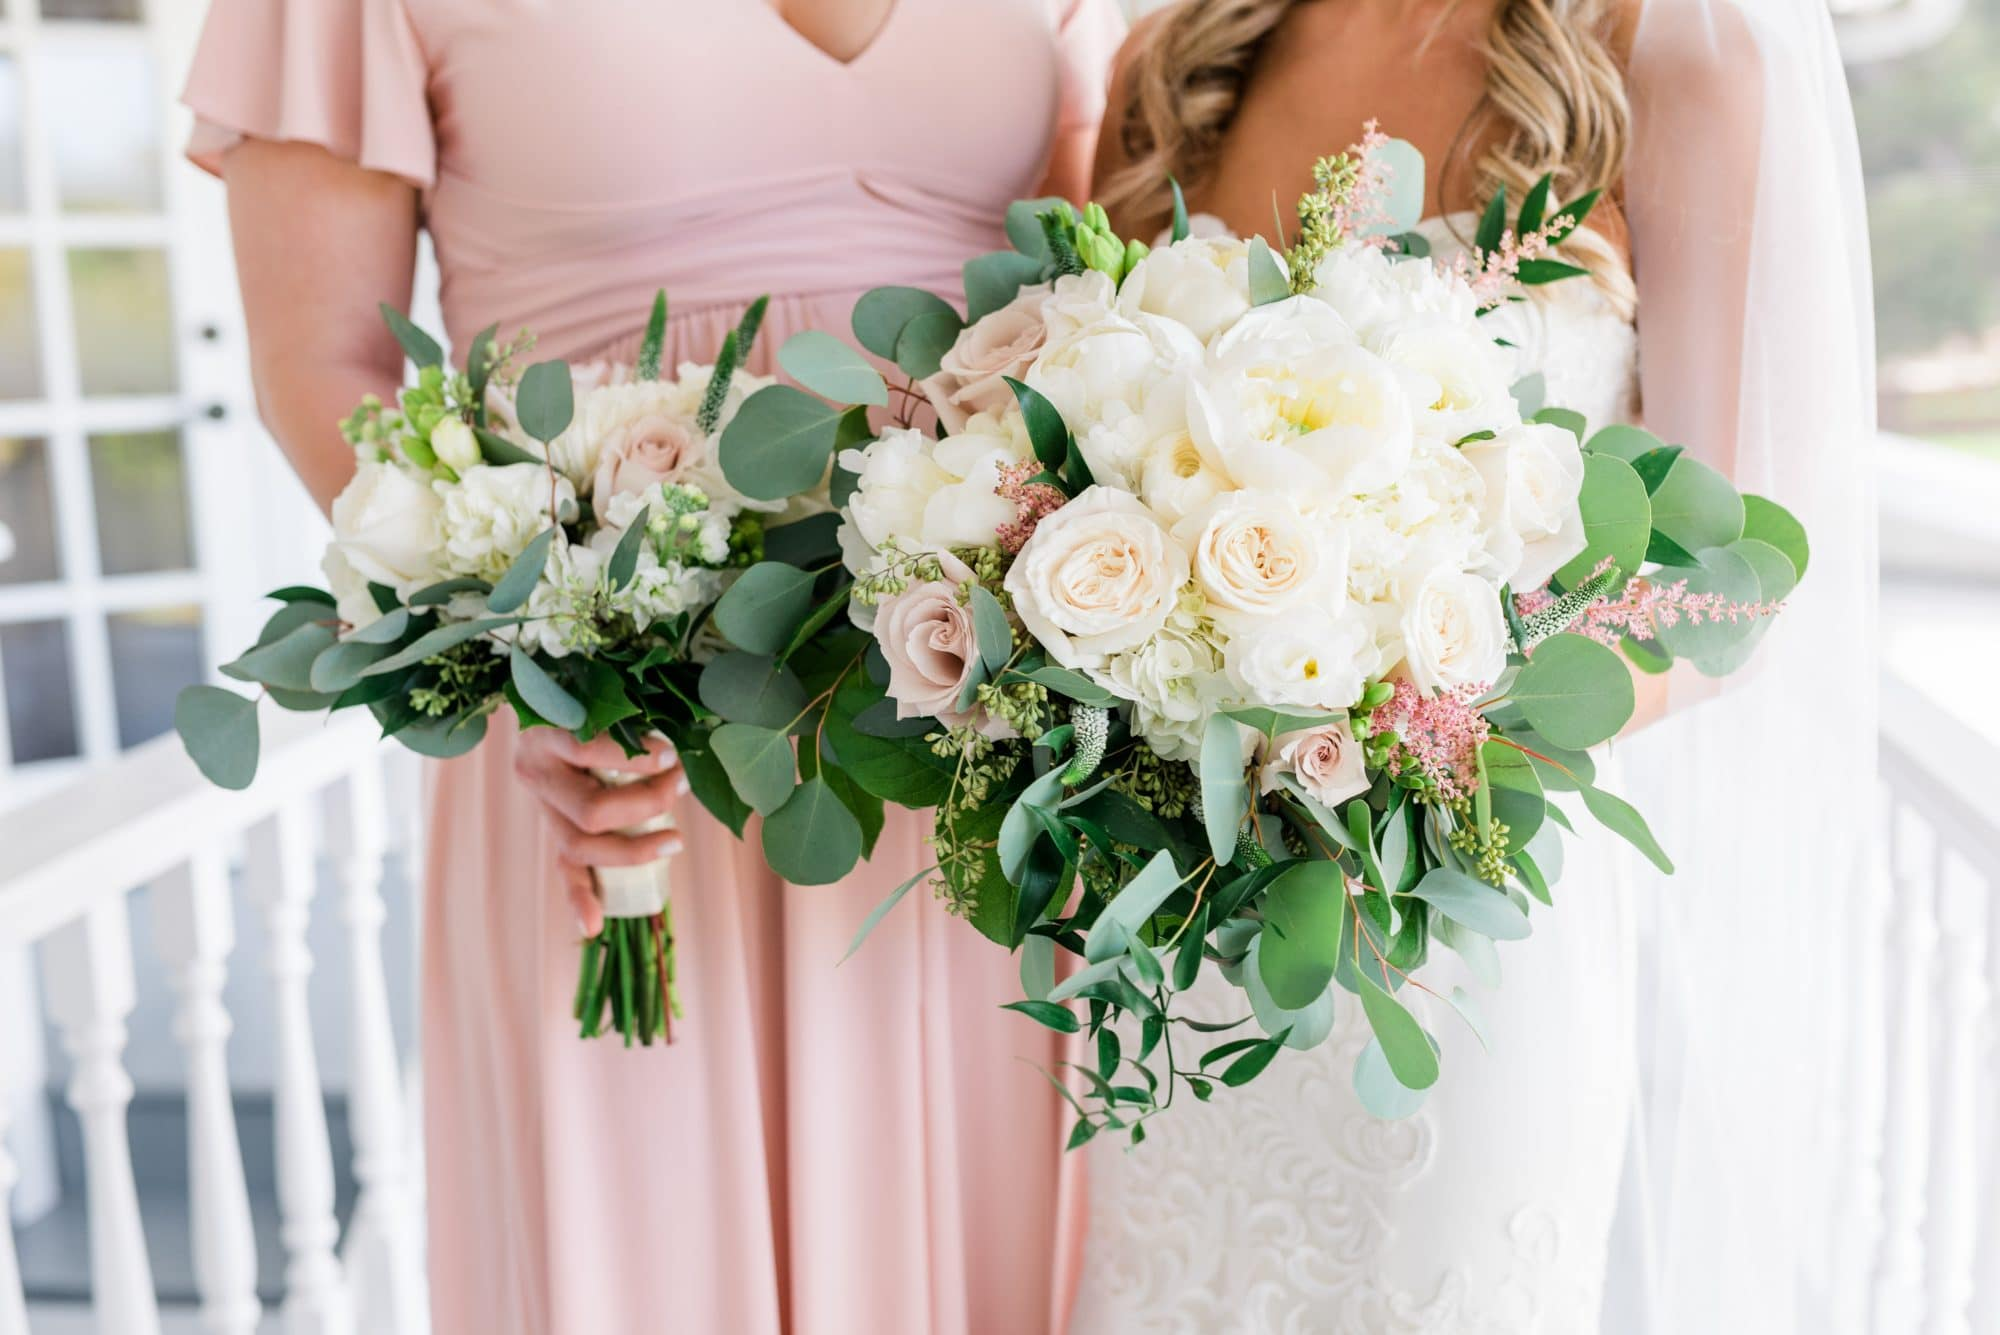 Bride and bridesmaid holding bouquets together